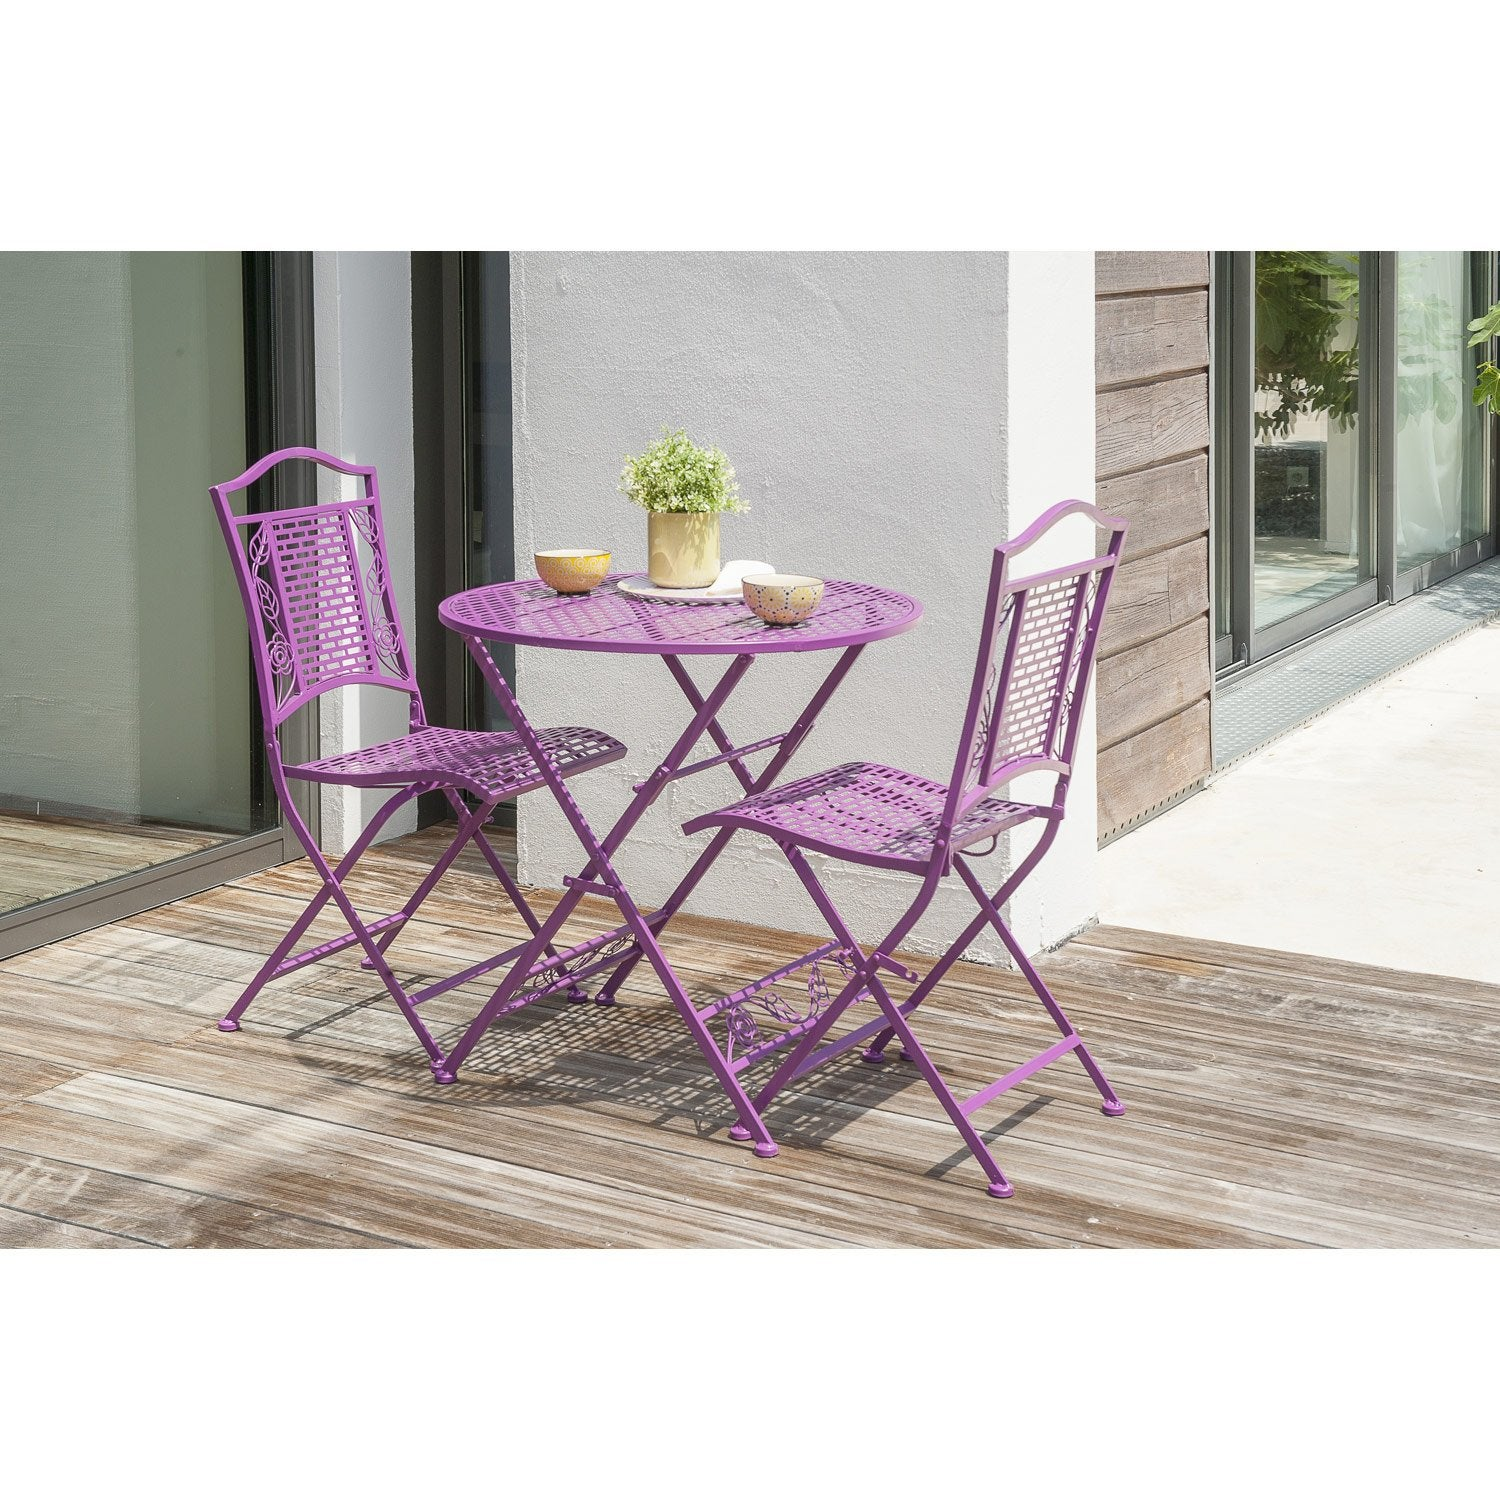 salon de jardin flora acier lilas 1 table gueridon 2 chaises leroy merlin. Black Bedroom Furniture Sets. Home Design Ideas